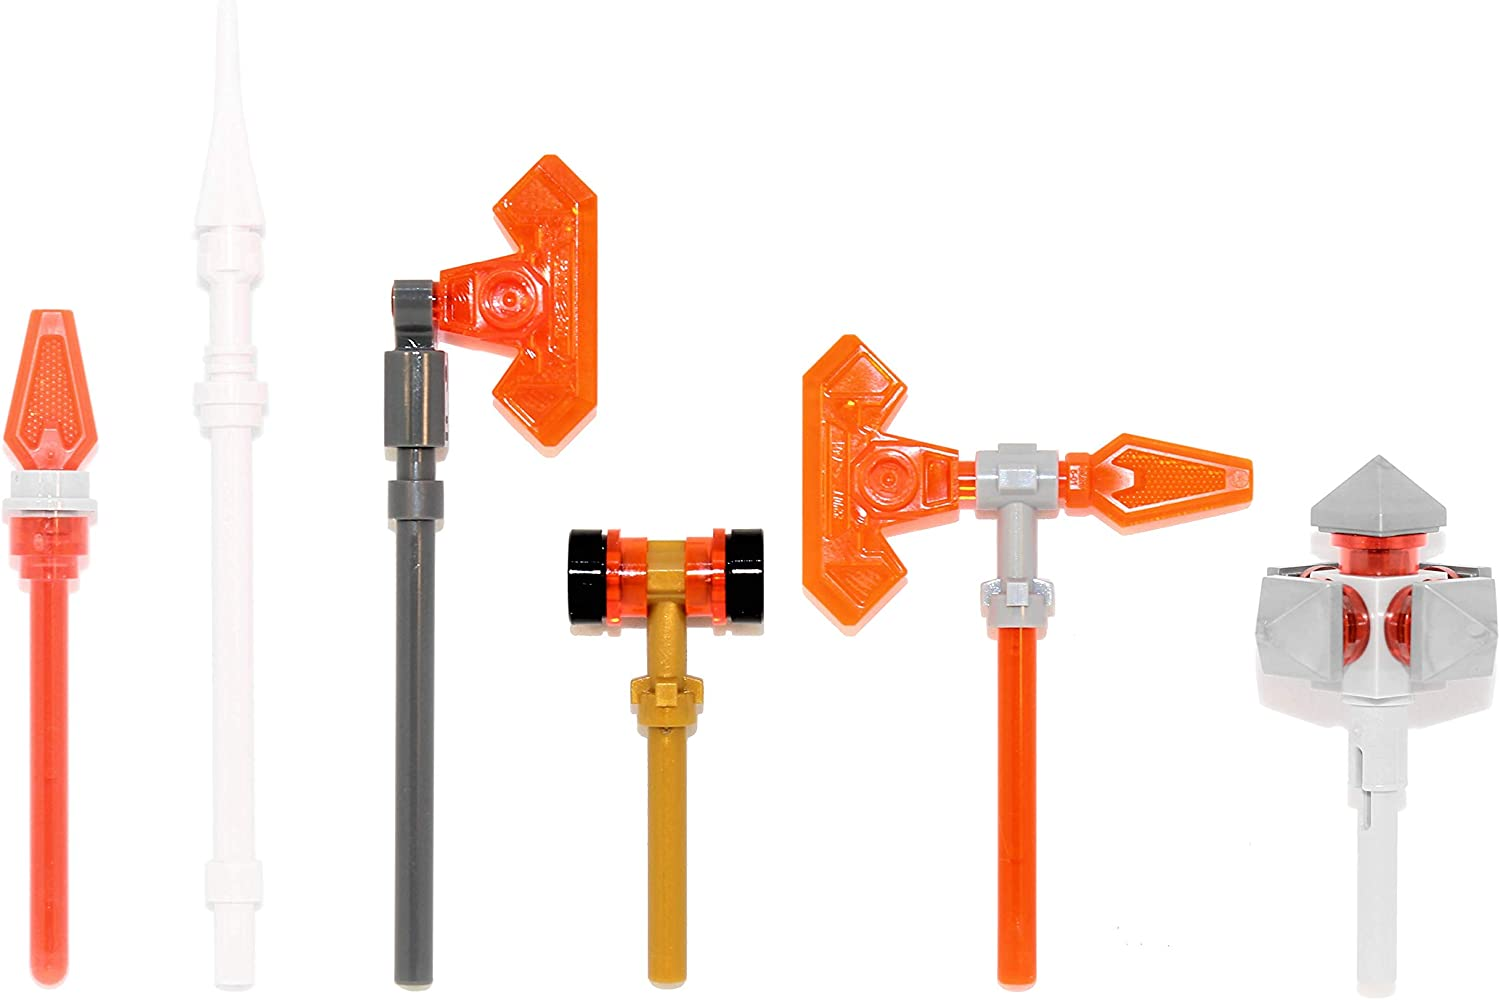 LEGO Nexo Knights Weapons Pack (Spears, Axes, Hammer, Mace)